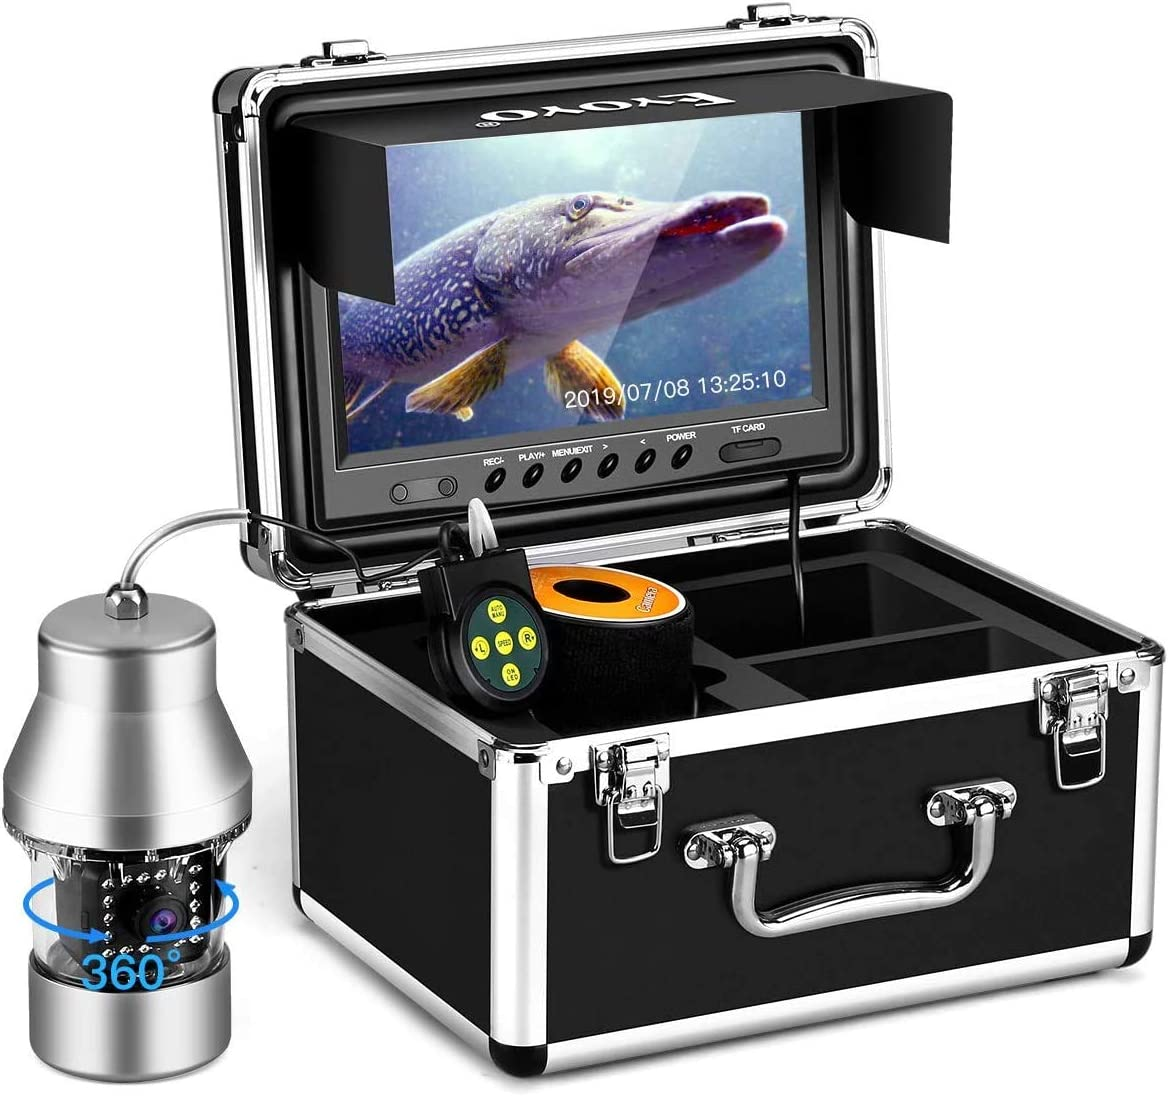 Eyoyo Underwater Fishing Camera Video Fish Finder DVR Function 9 inch Large Color Screen 360° Horizontal Panning Camera 1000TVL w/ 18 Infrared IR Lights 30M Cable for Lake Sea Boat Ice Fishing